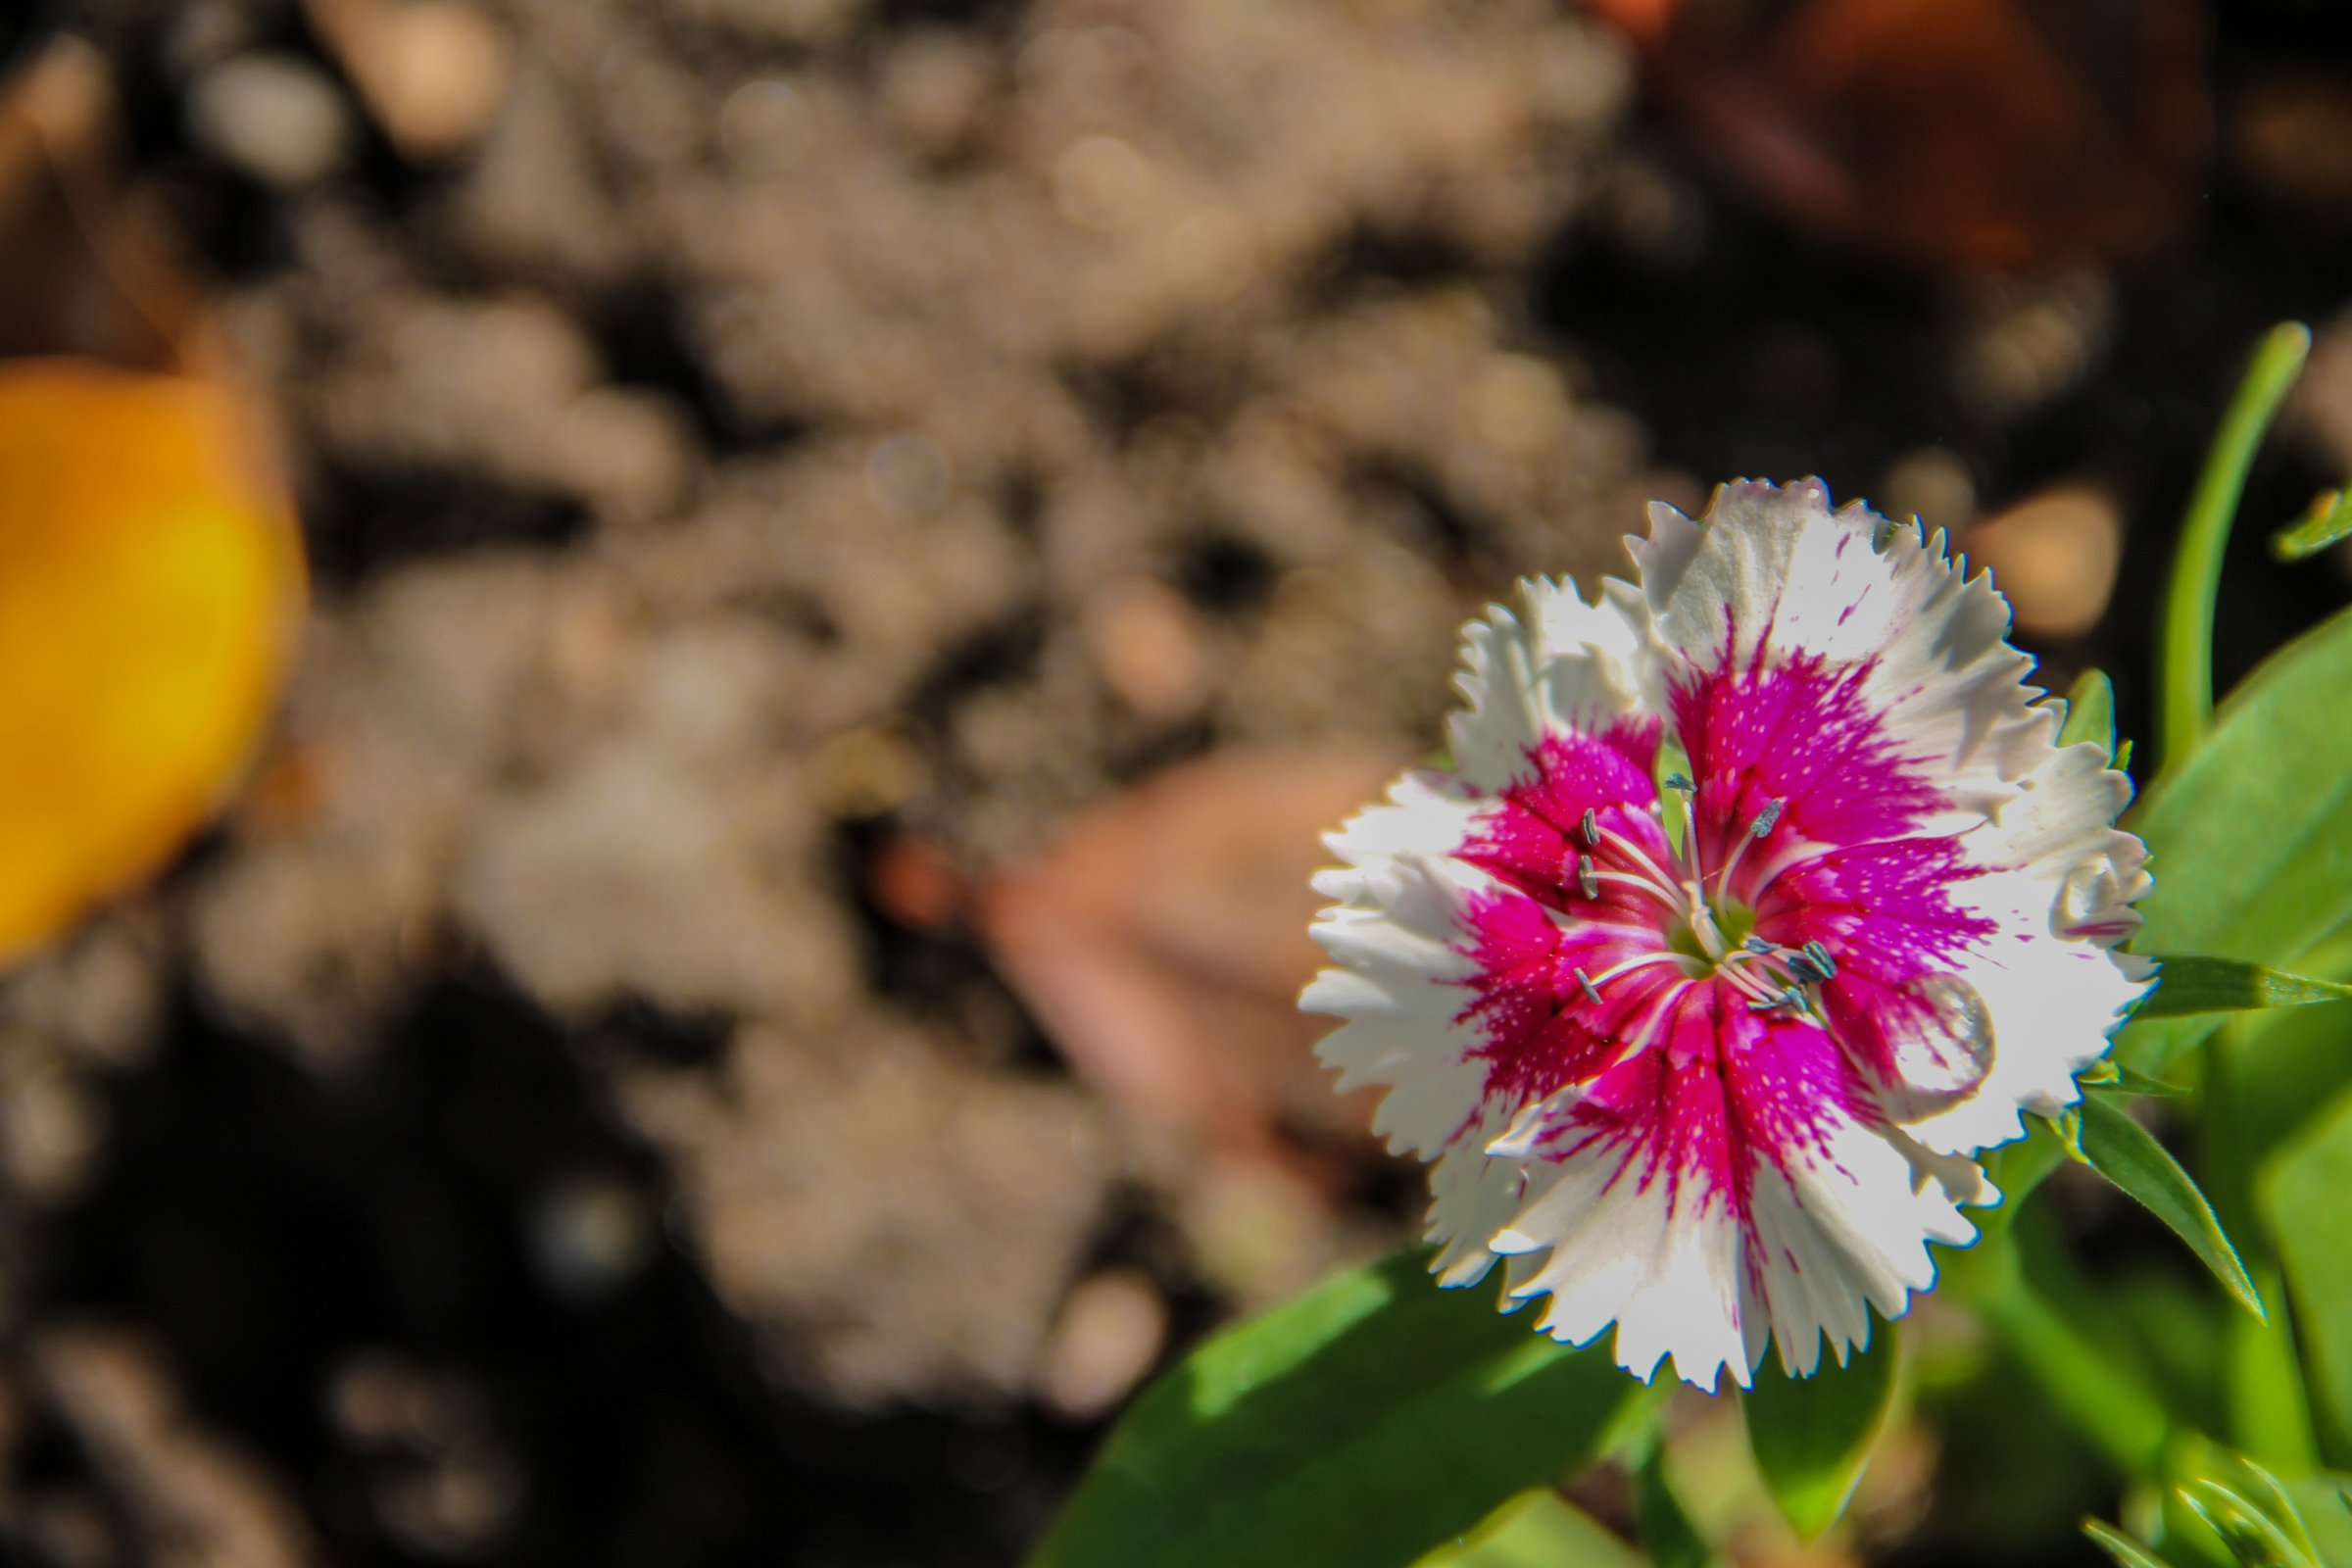 Pink & White Dianthus Flower Over Dirt